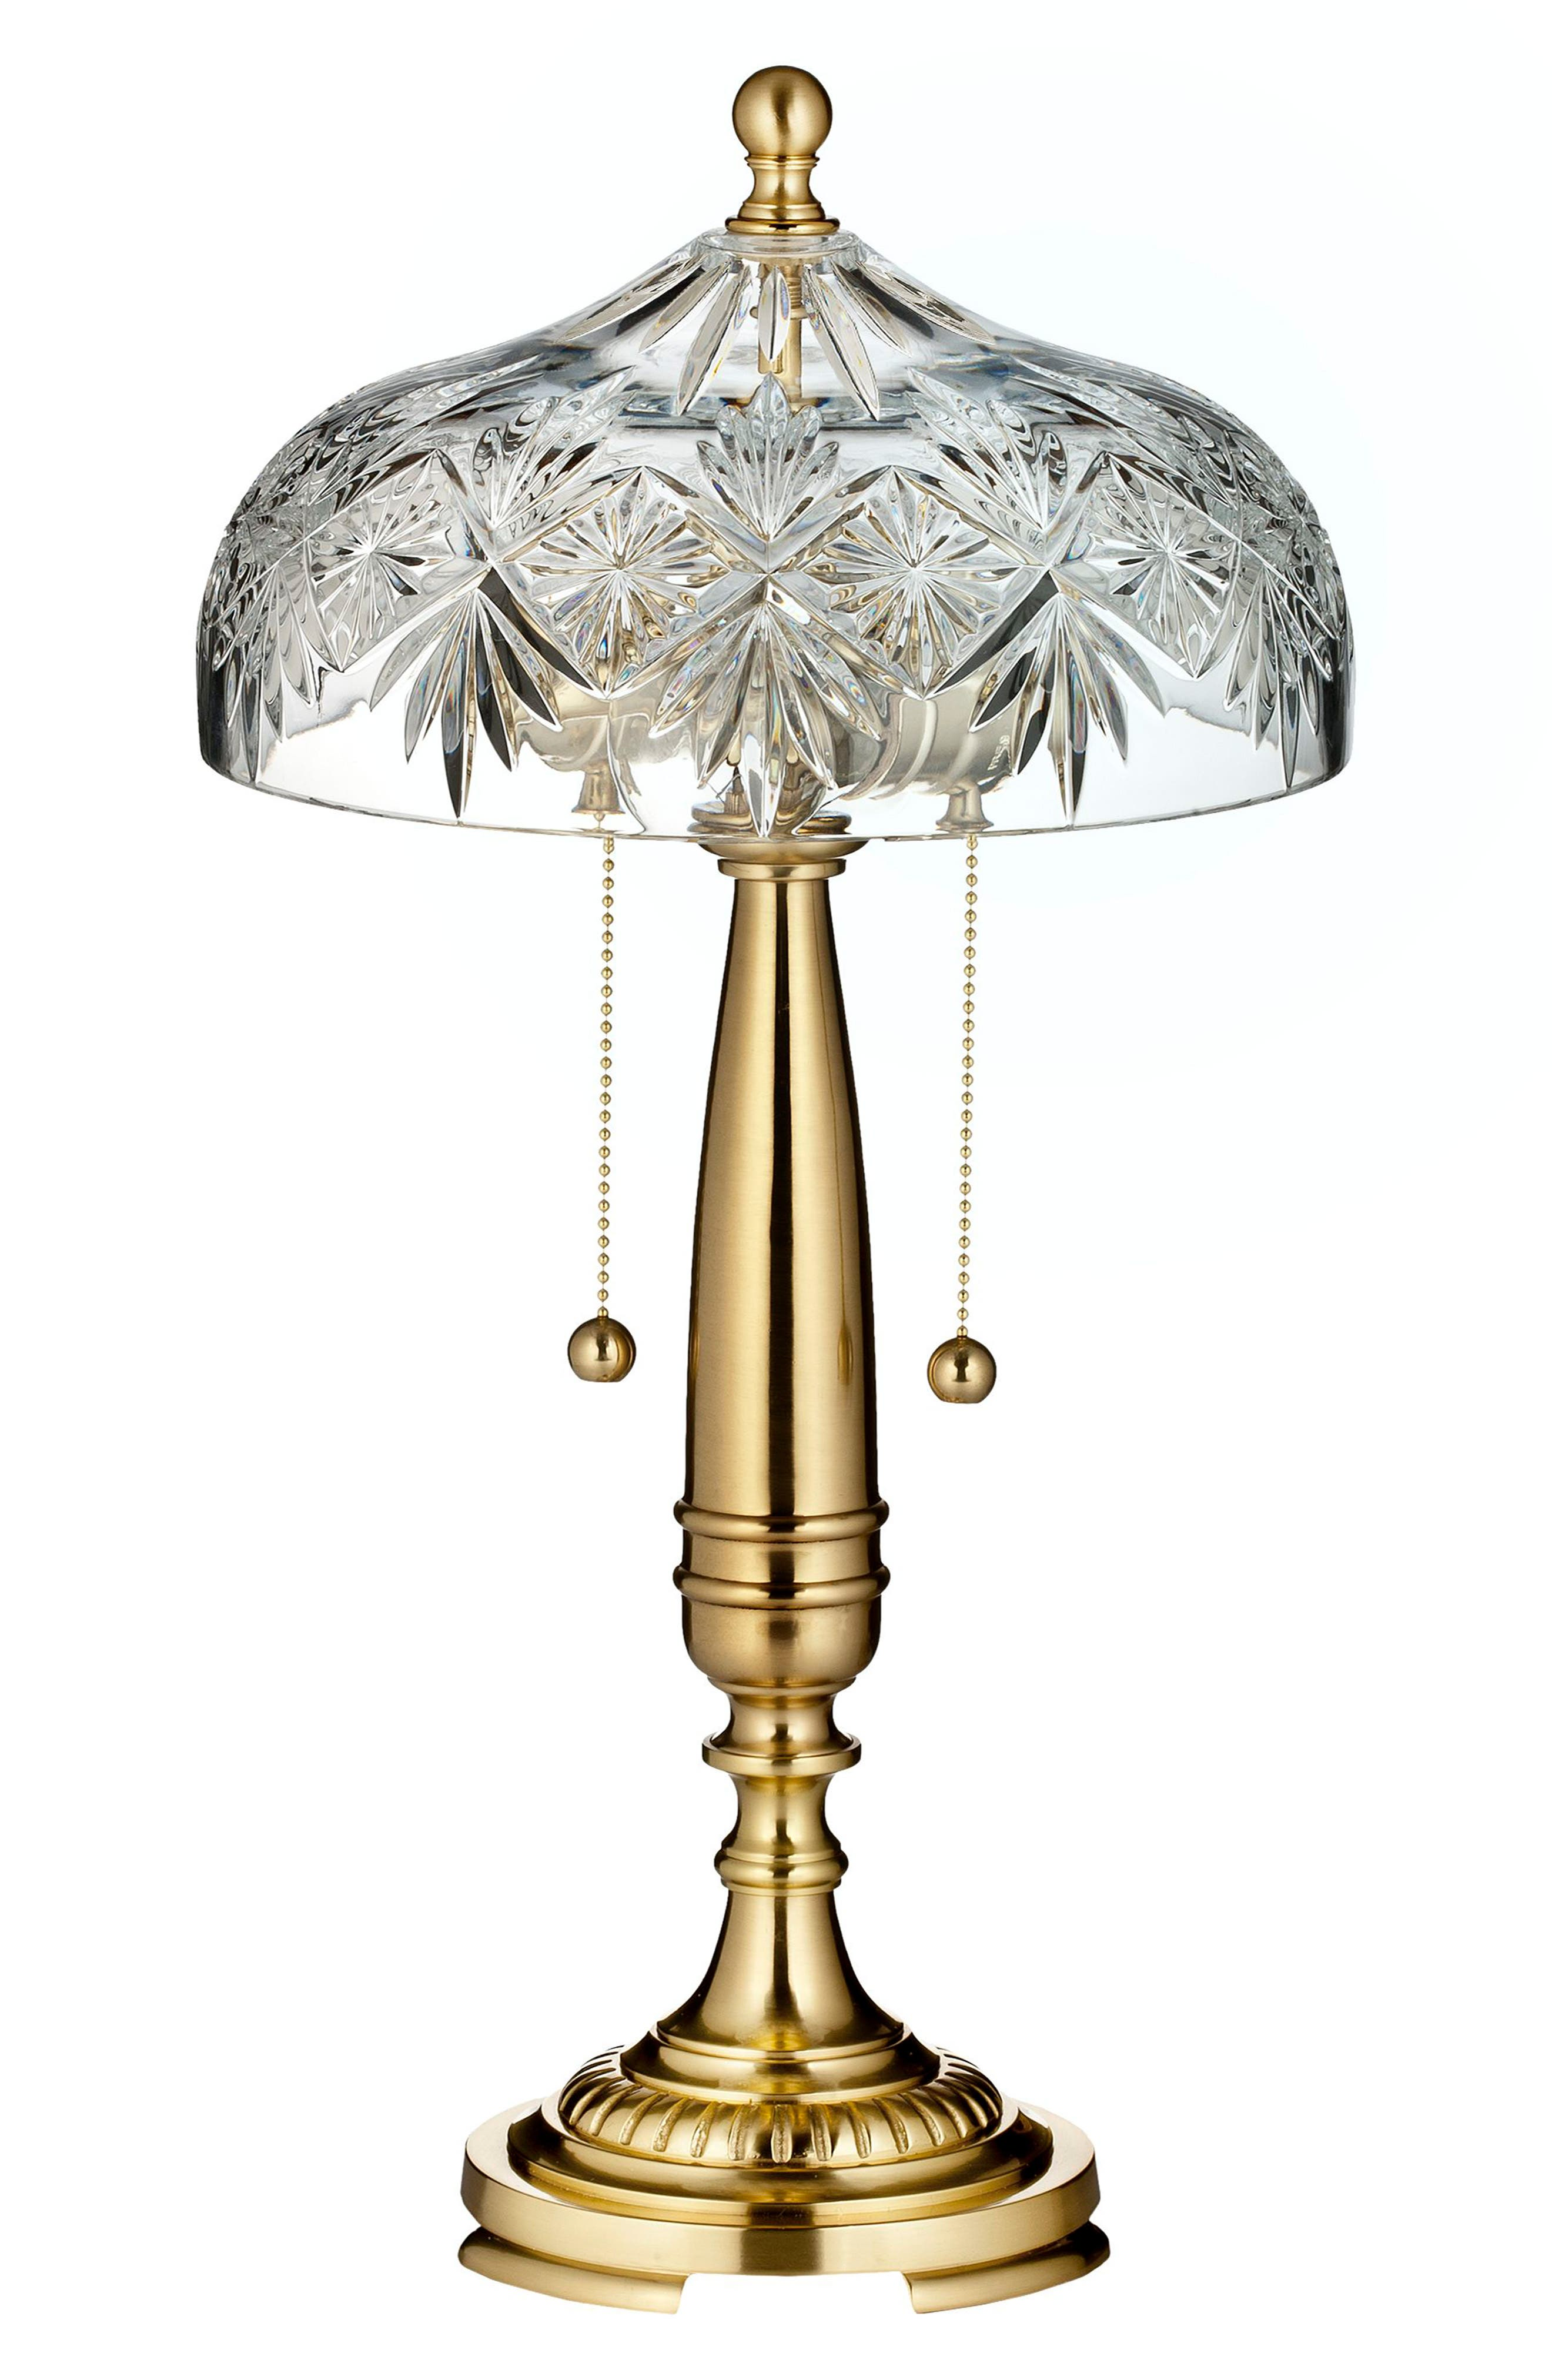 Main Image - Waterford Renmore Lead Crystal Table Lamp